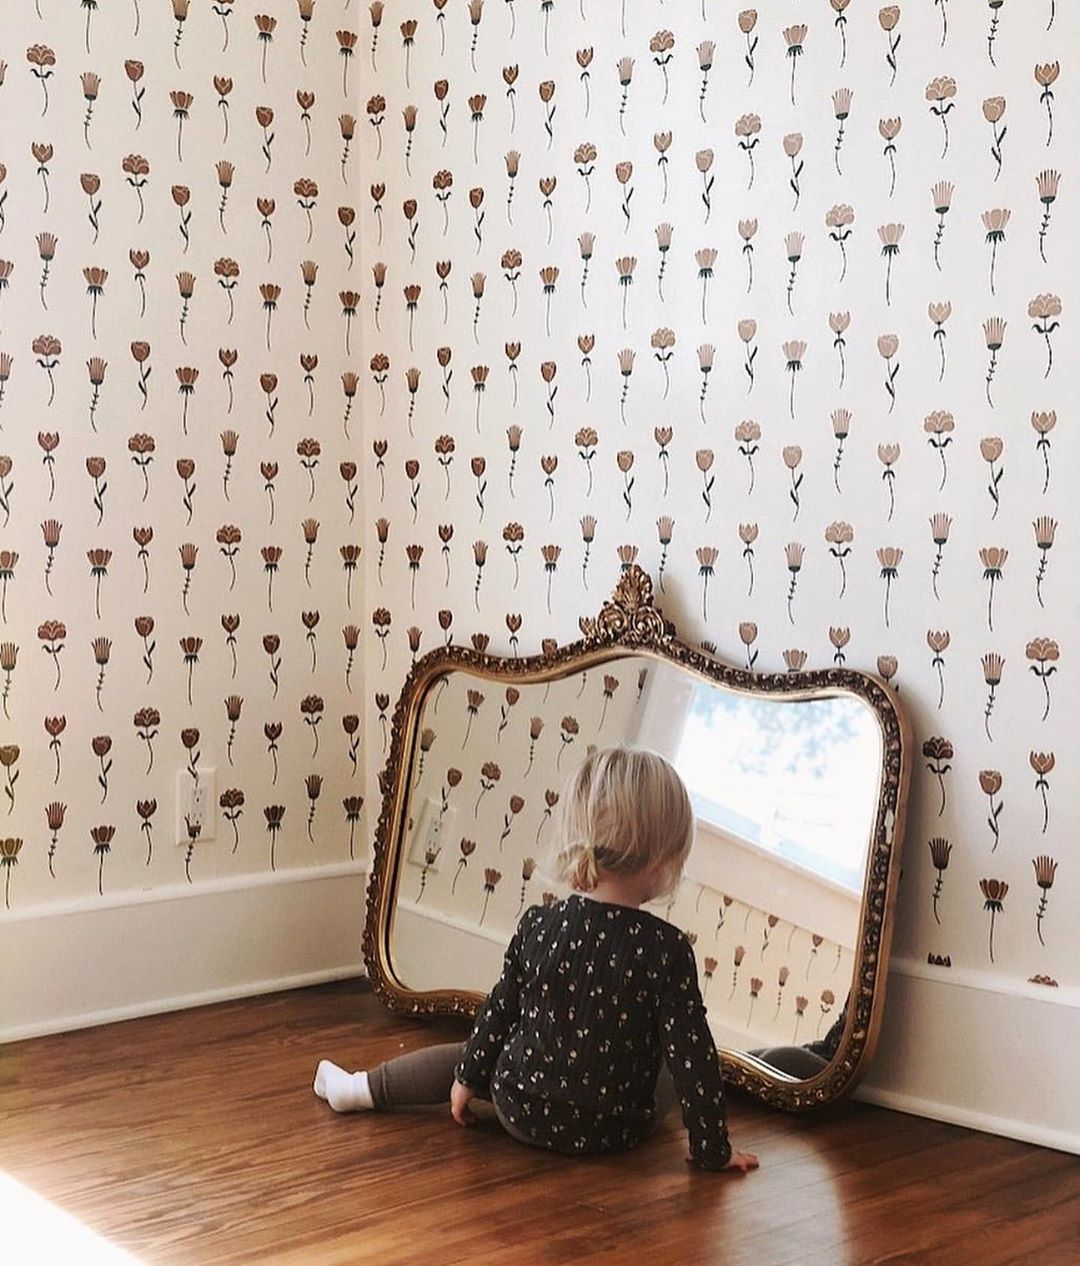 Margot Copper wallpaper | Wit & Delight | Hygge & West